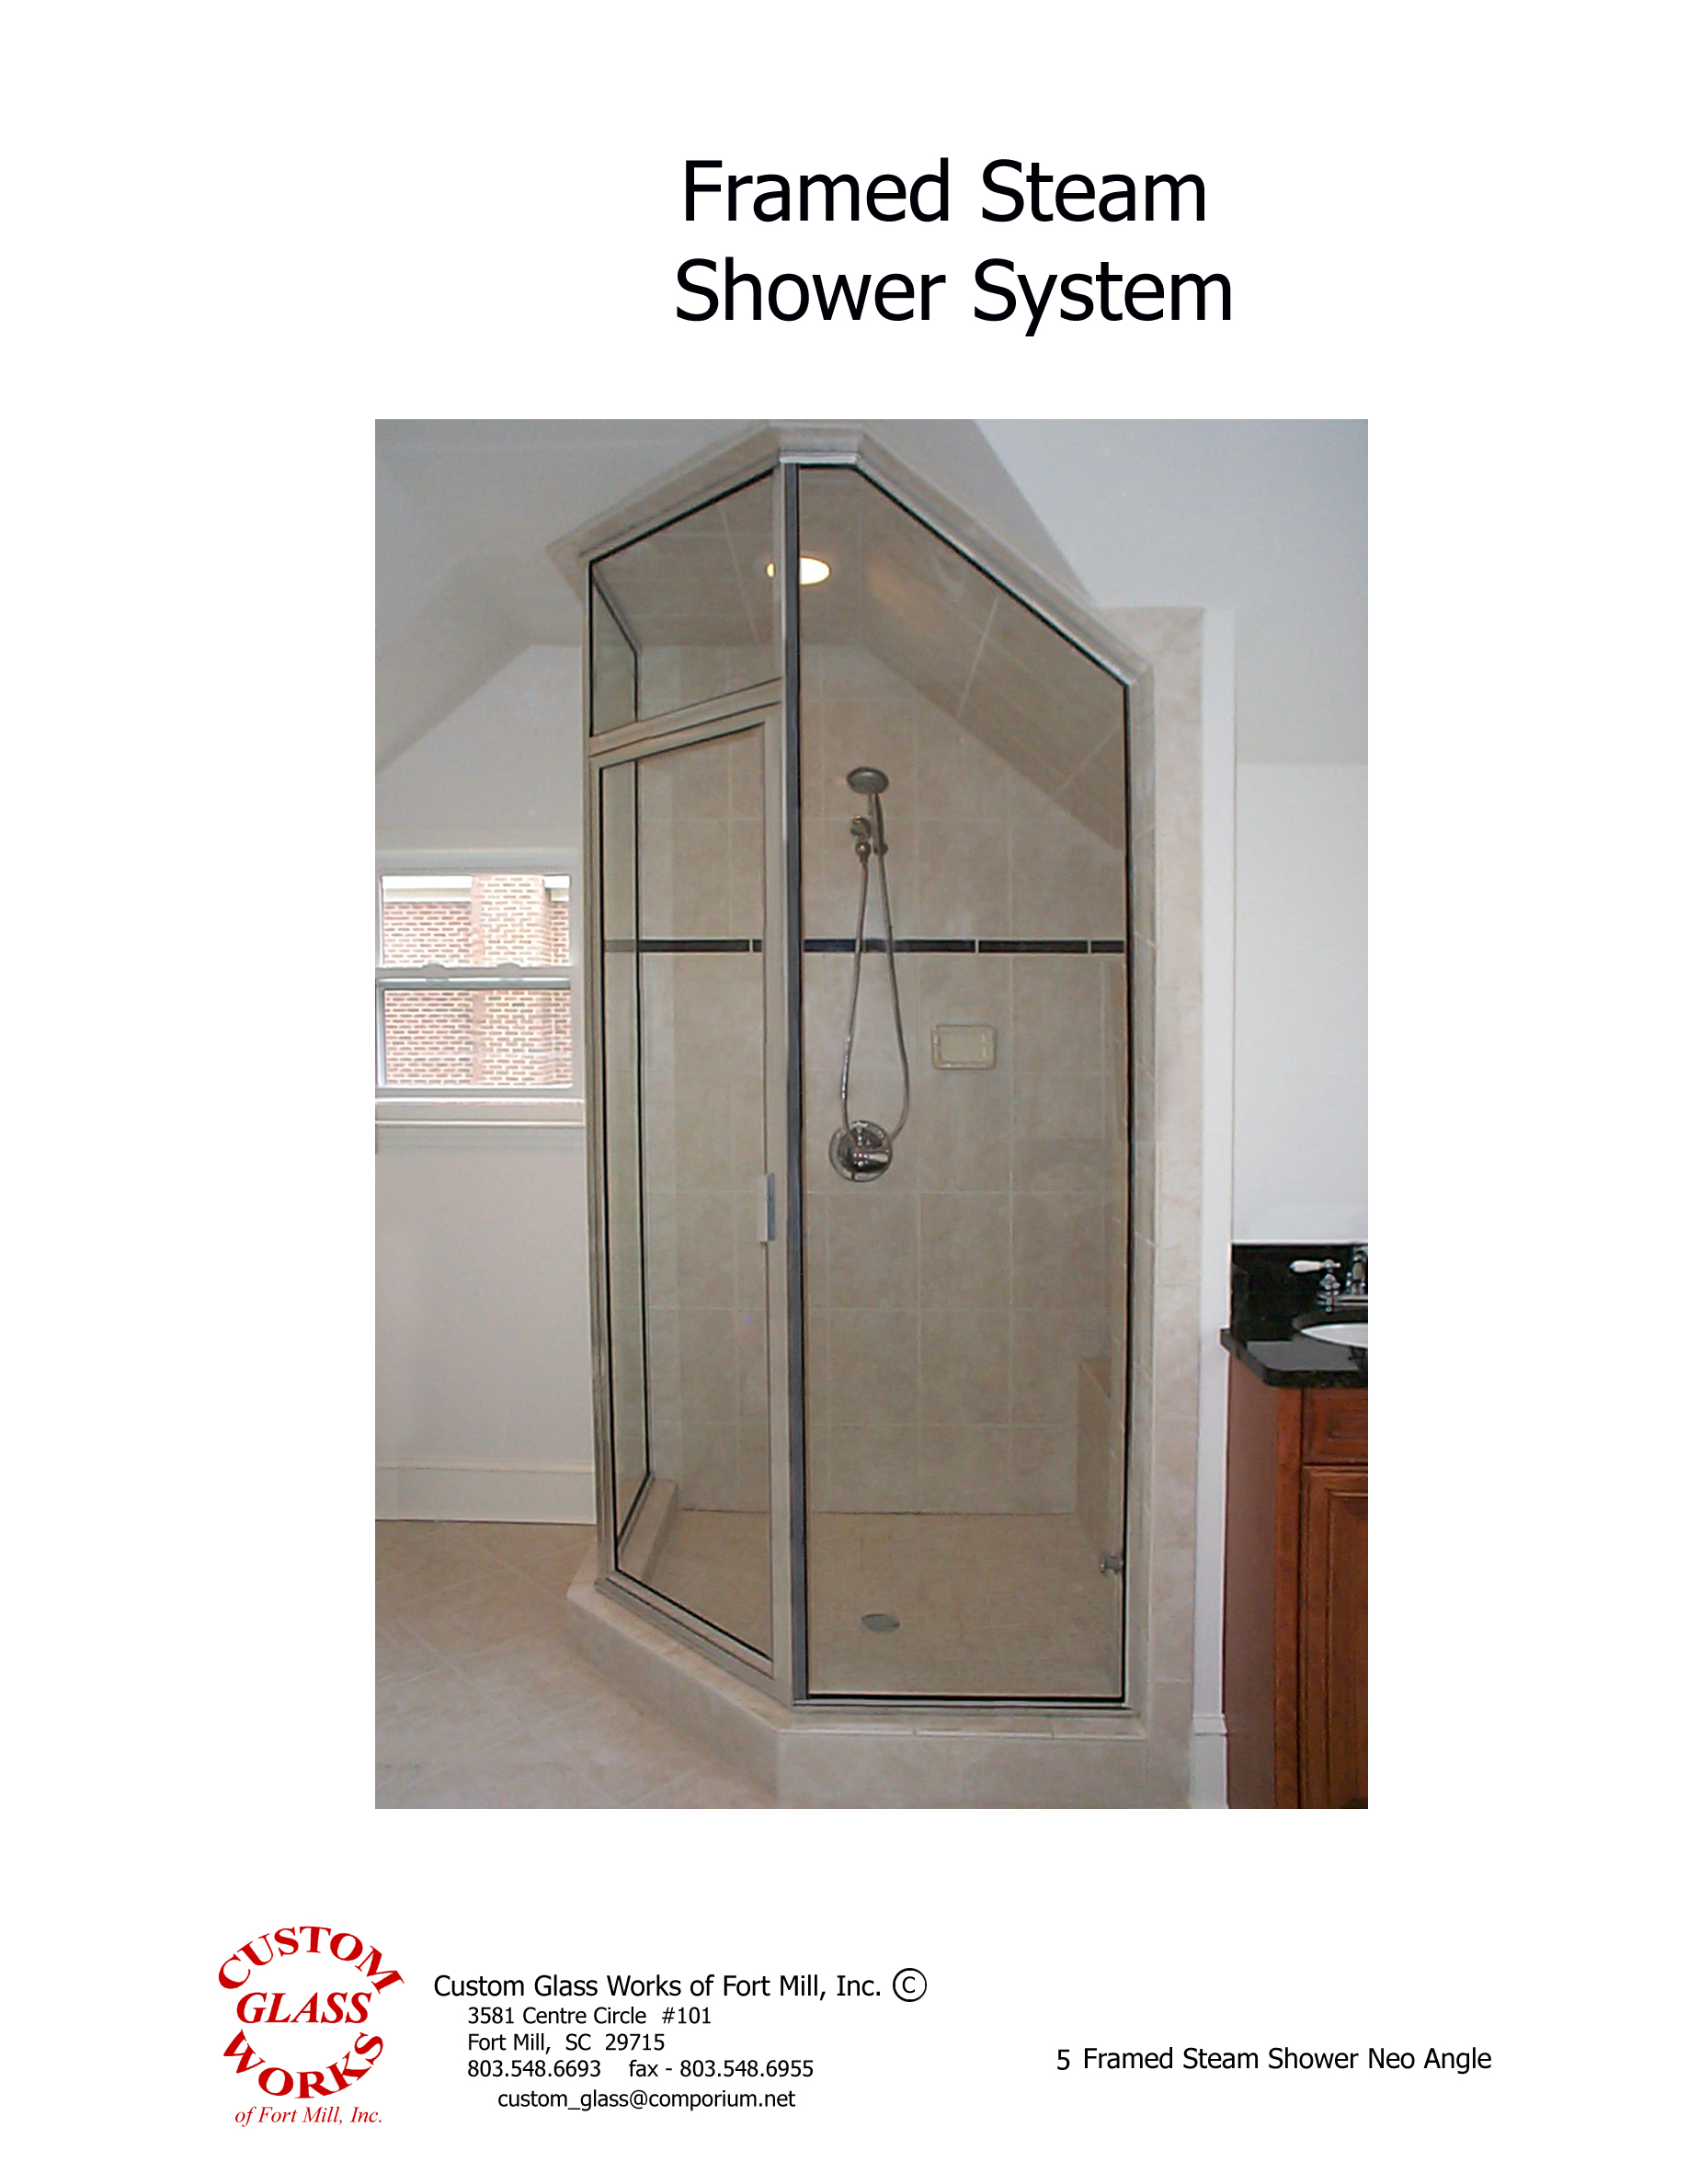 5 Framed Steam Shower Neo Angle